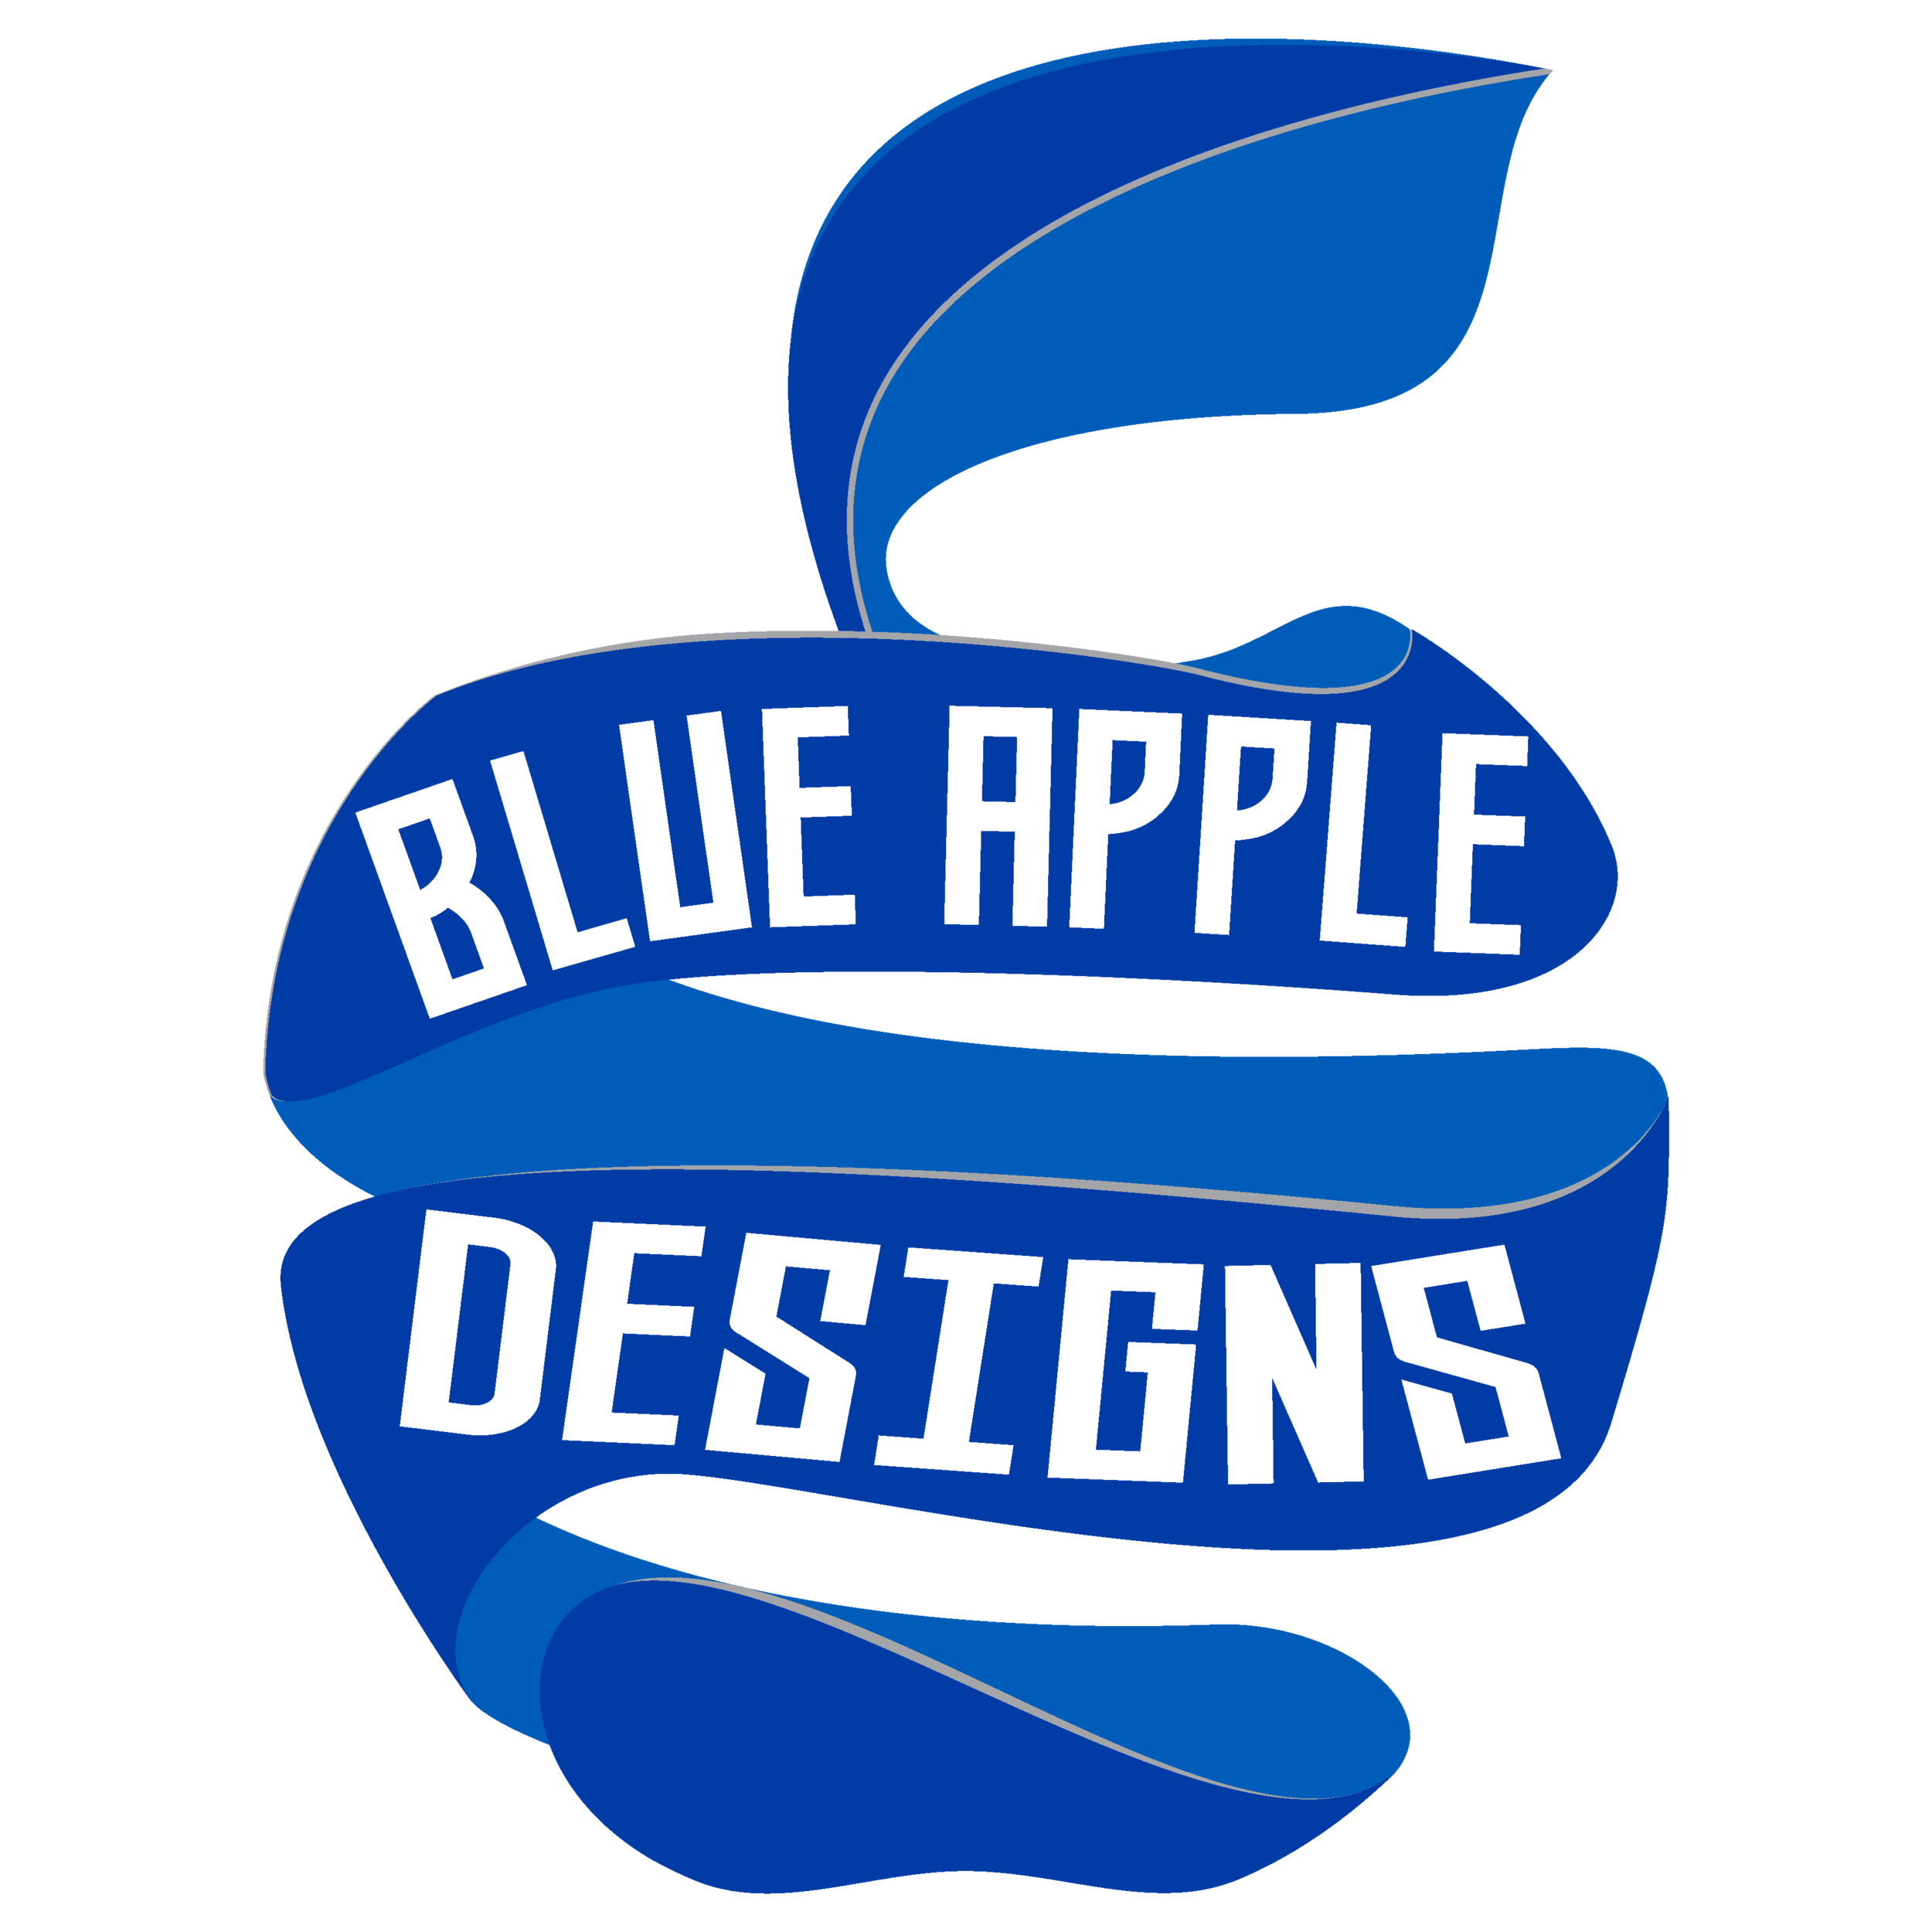 Blue apple clipart image black and white BLUE APPLE DESIGNS image black and white